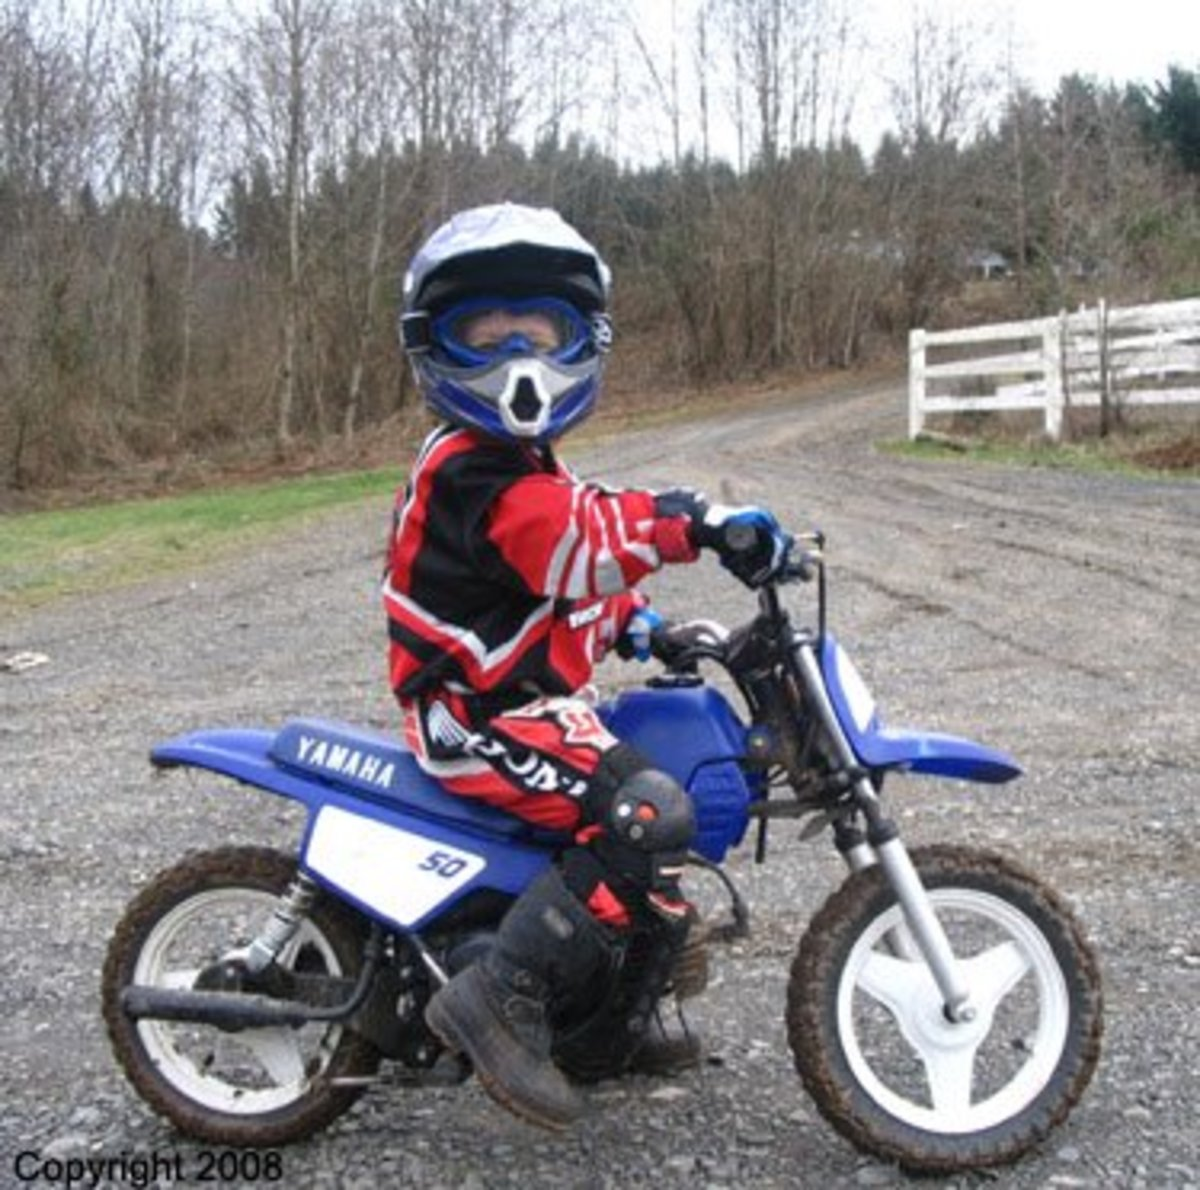 Which Motorcycle Should I Buy for My 3- to 7-Year-Old's First Dirt Bike